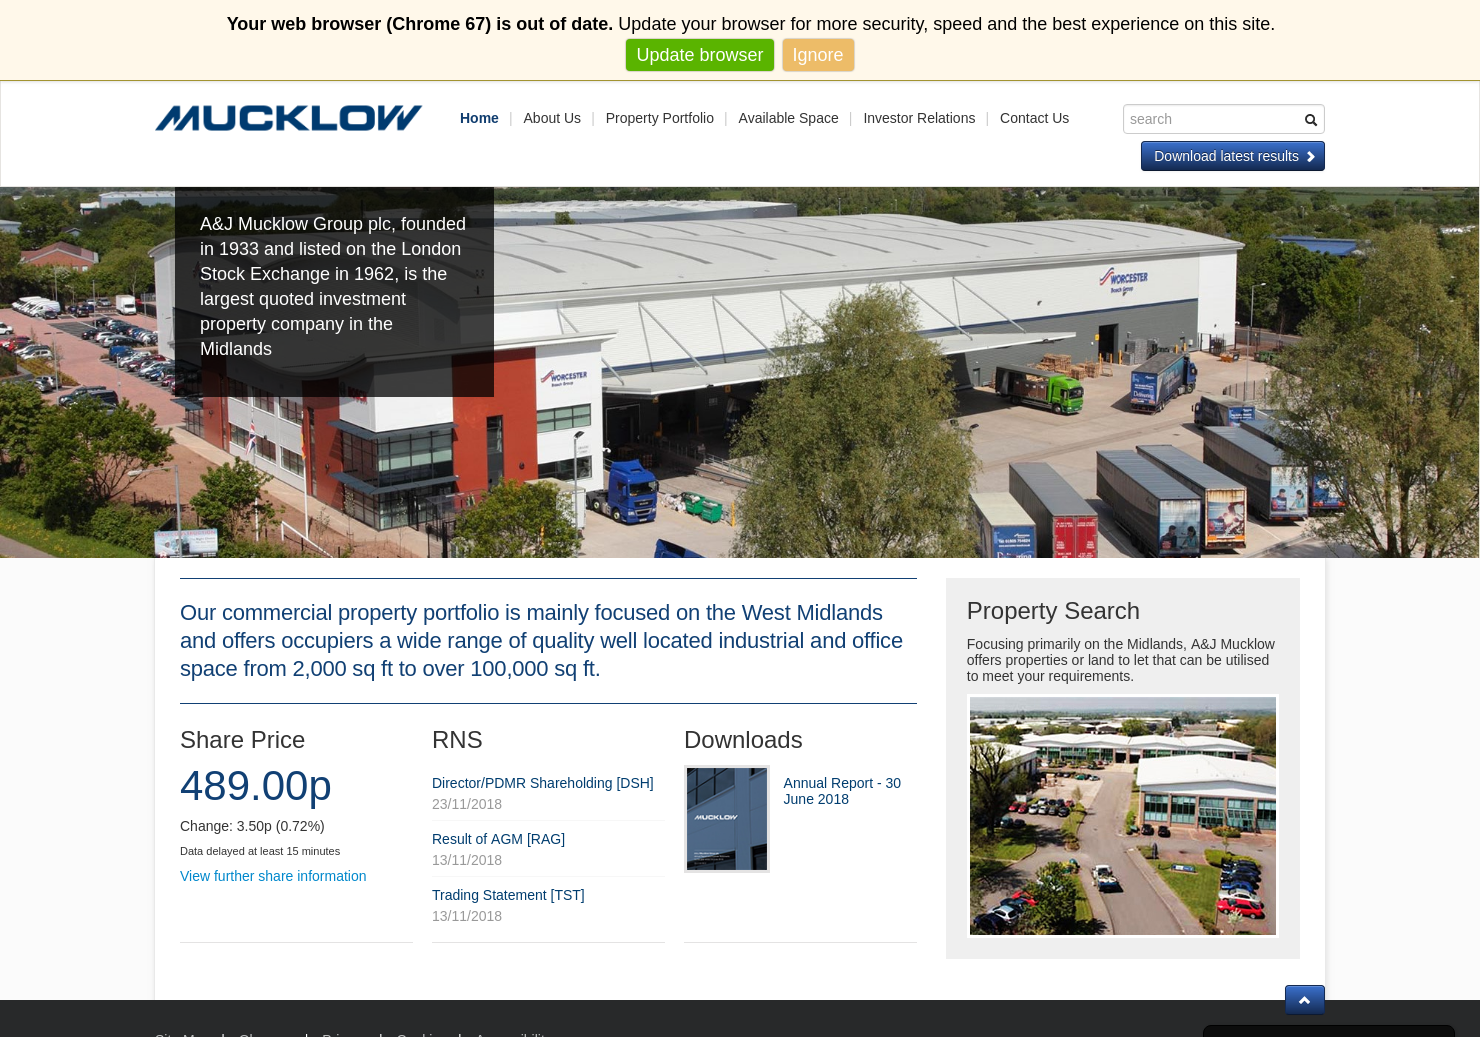 Mucklow (A & J) Home Page